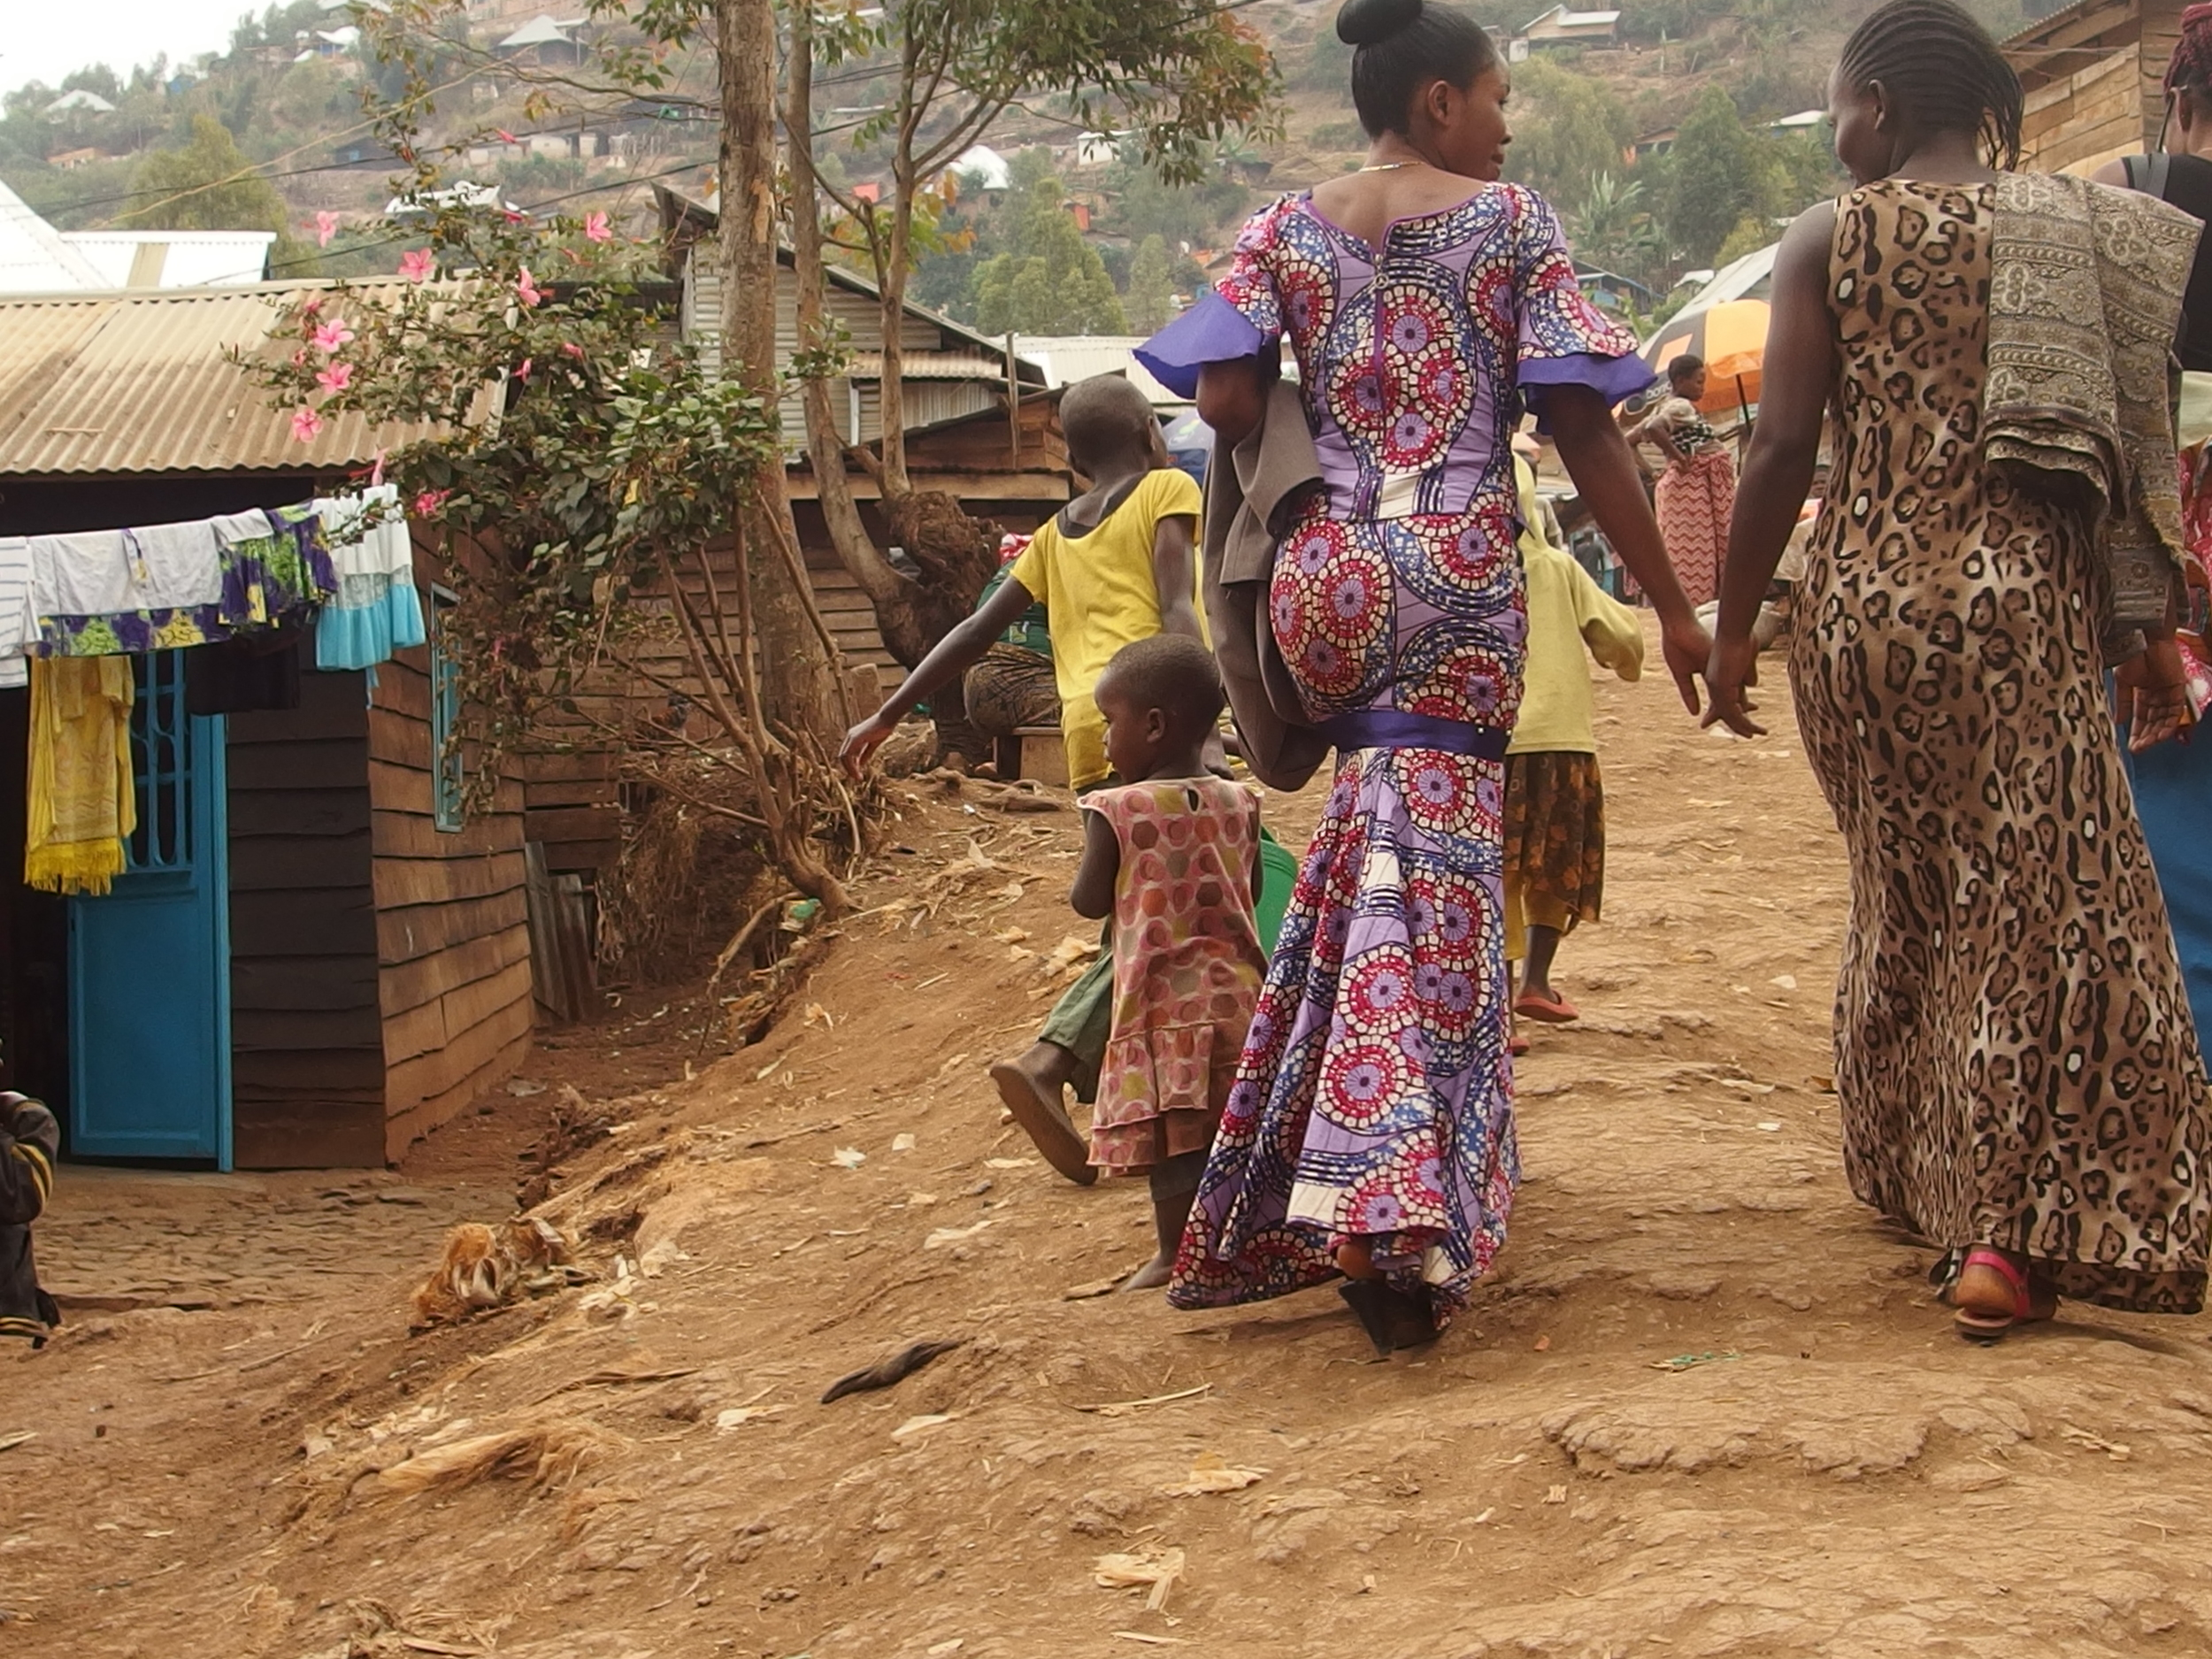 Walking with two of the sewing machine recipients to their workshop. They work together and have already started training three more women from their community on their machines.